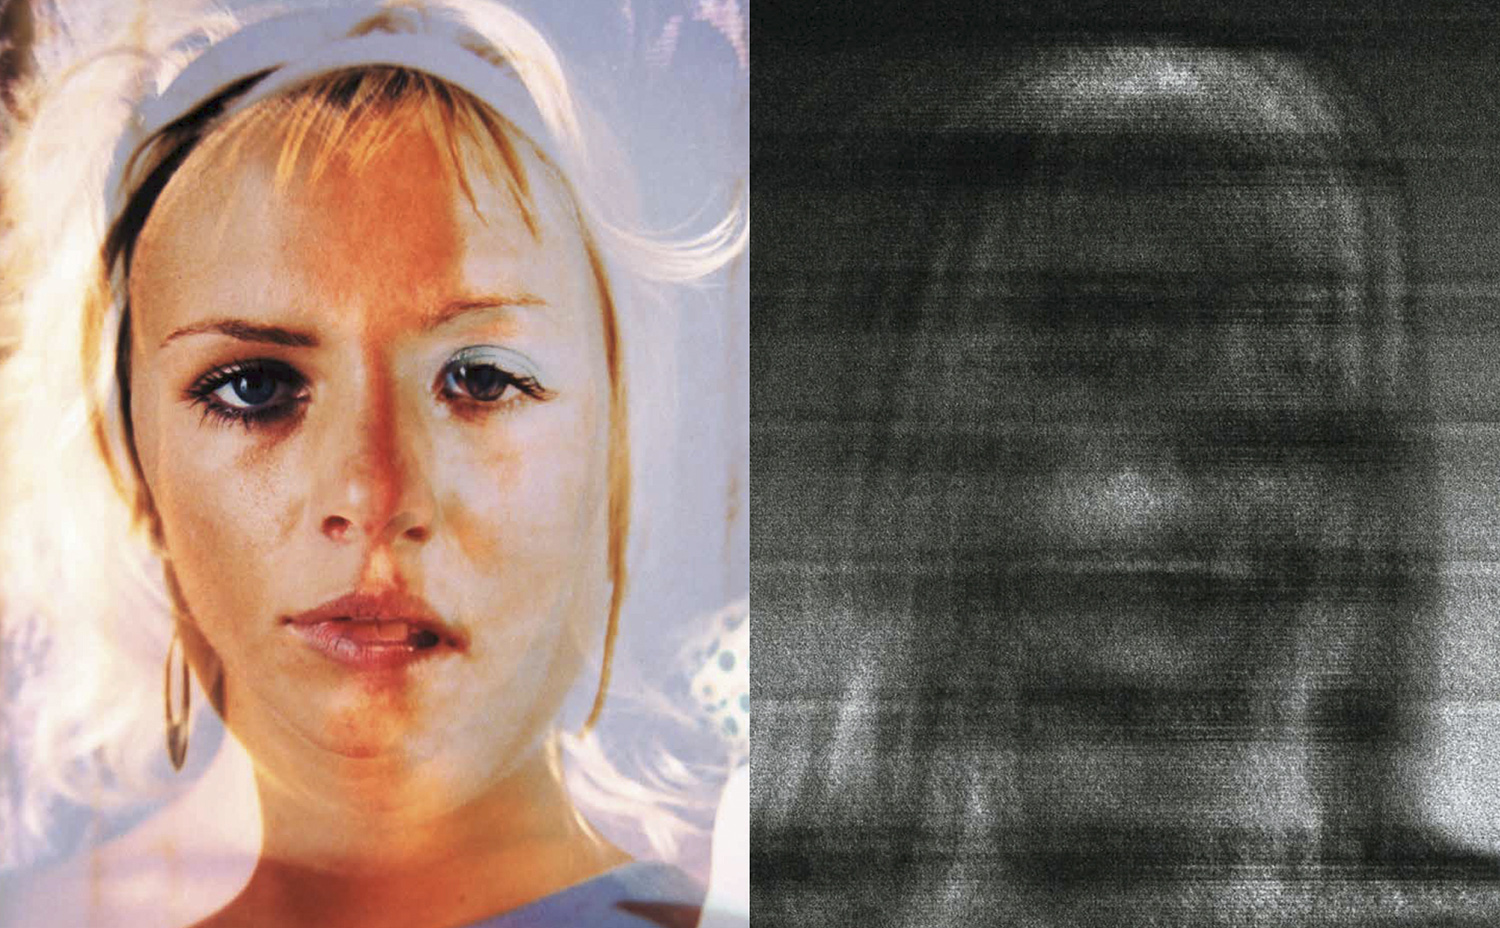 Coalescence XIII, 2013 and Error V H J (detail), 2008. The image on the left is an amalgamation of two portraits of girls I shot in Ibiza in 2002 and 2006. I photographed the original prints onto a single frame of film and then reprinted. I'm toying with the idea of oneness and unity at the quantum level. We are different and yet the same, and we shift from one state to another. The image on the right is part of the Ibiza Mistakes series. Ibiza is significant in the history of rave culture and was where English DJs first took ecstasy in 1987, in Amnesia nightclub, before returning to England. Once home, they tried to replicate the MDMA experience and sparked what came to be known as The Second Summer of Love.